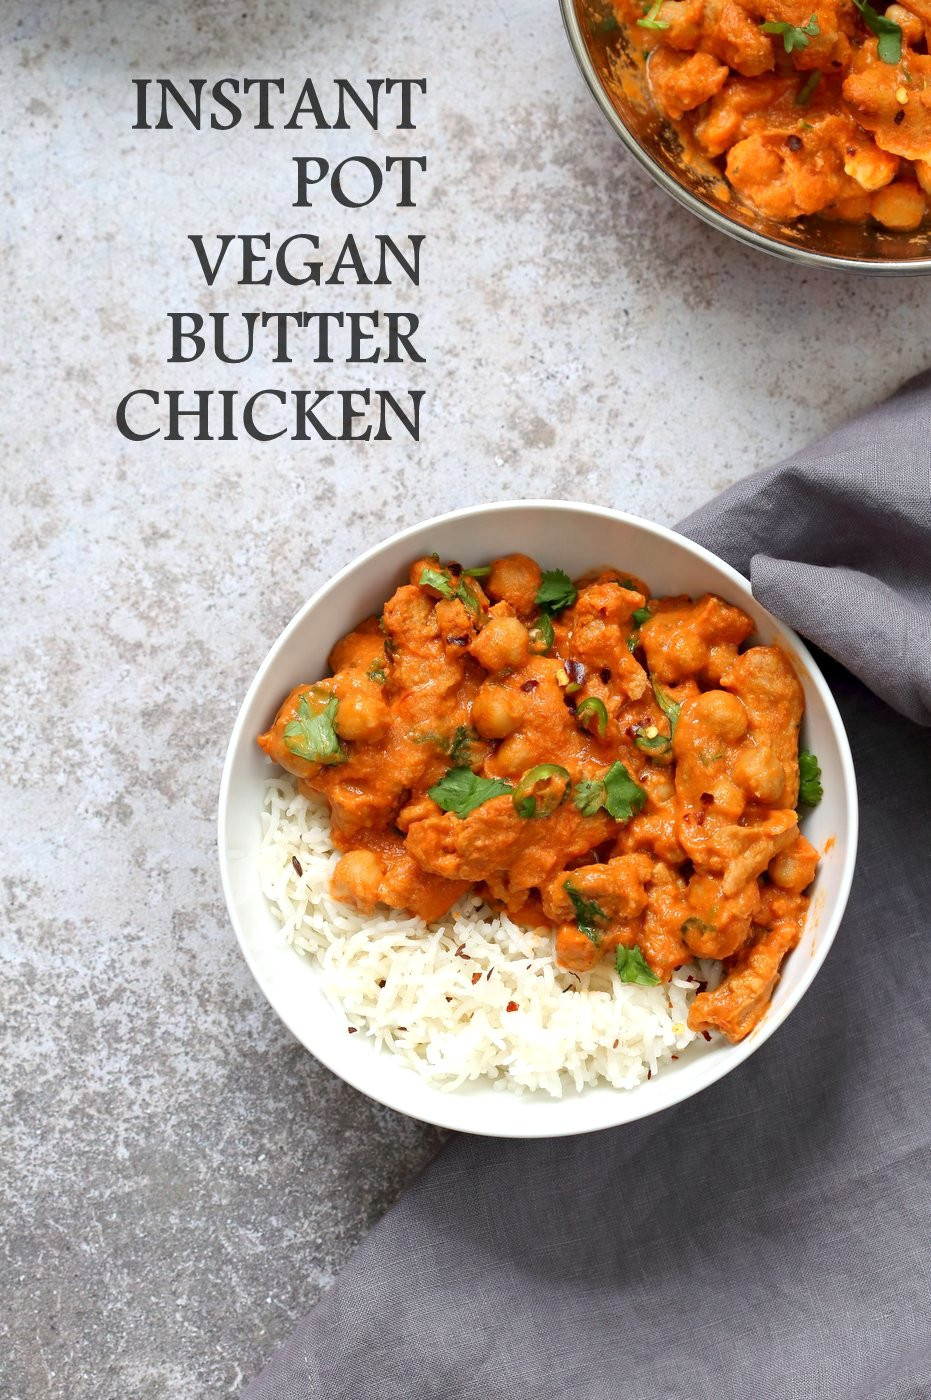 Instant Pot Vegetarian Recipes Indian  Instant Pot Vegan Butter Chicken with Soy Curls and